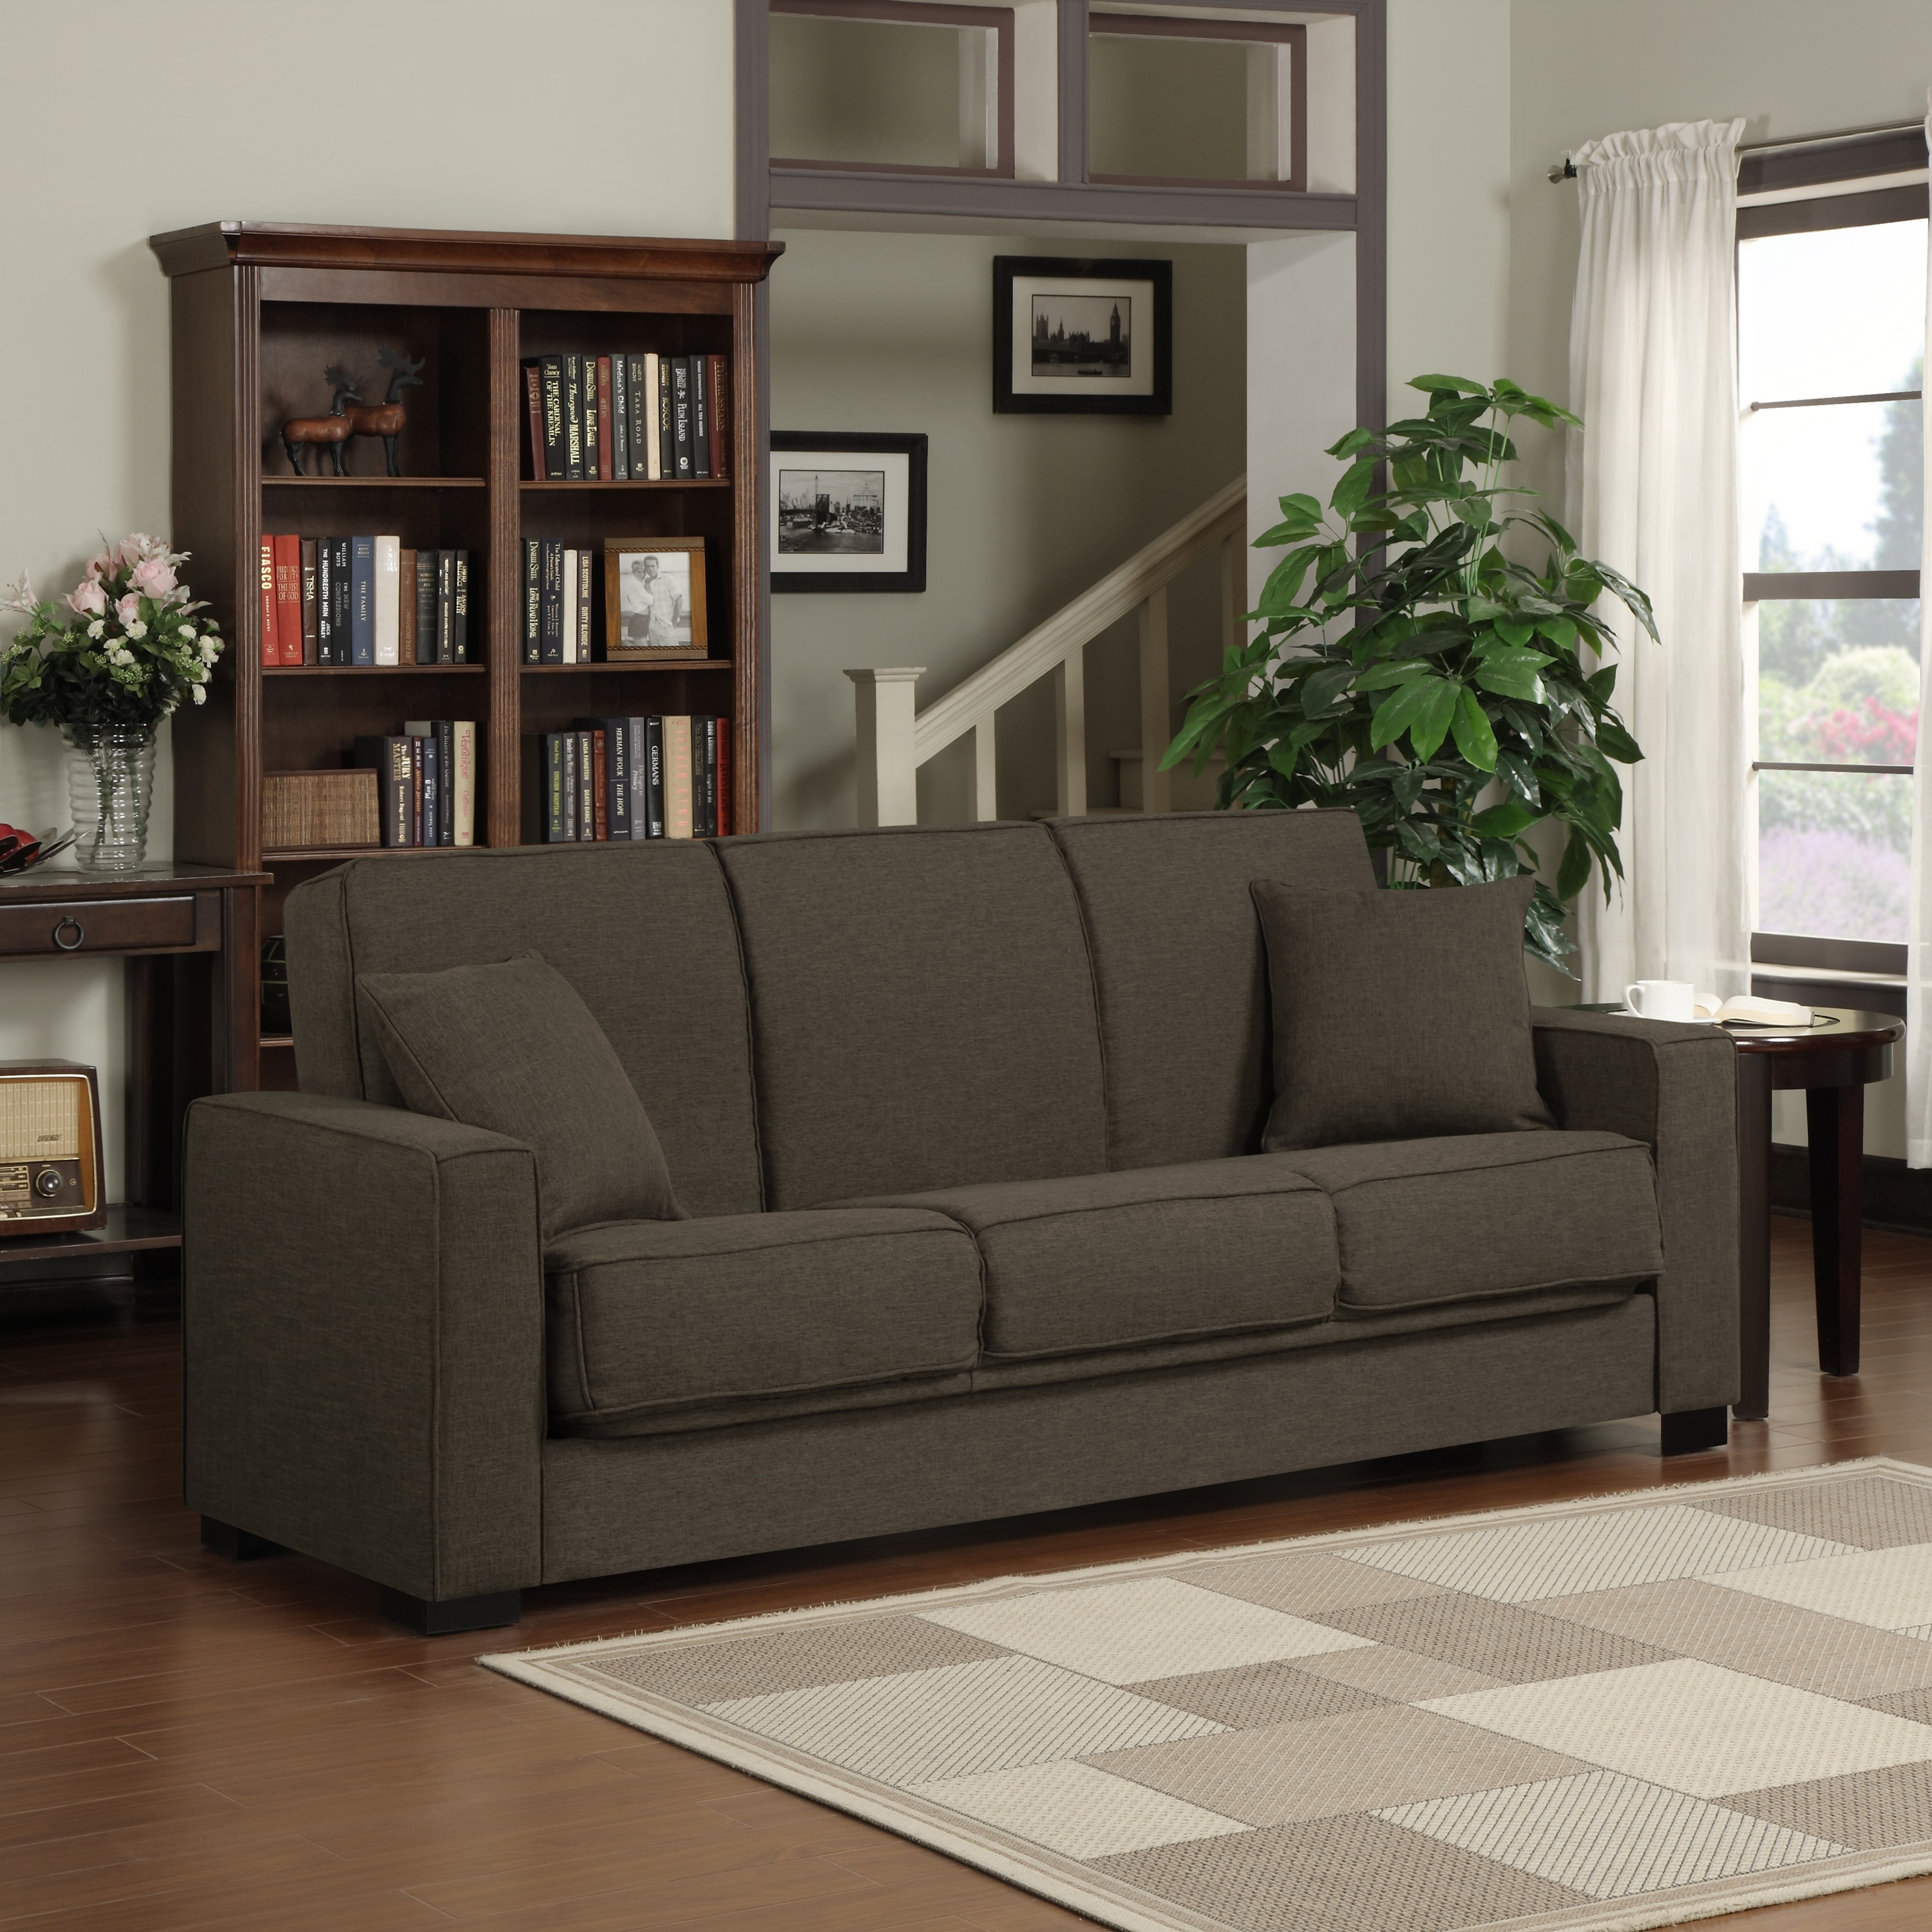 Handy Living Mali Convert A Couch Chocolate Brown Linen Futon Sofa Sleeper On Free Shipping Today Com 8022058